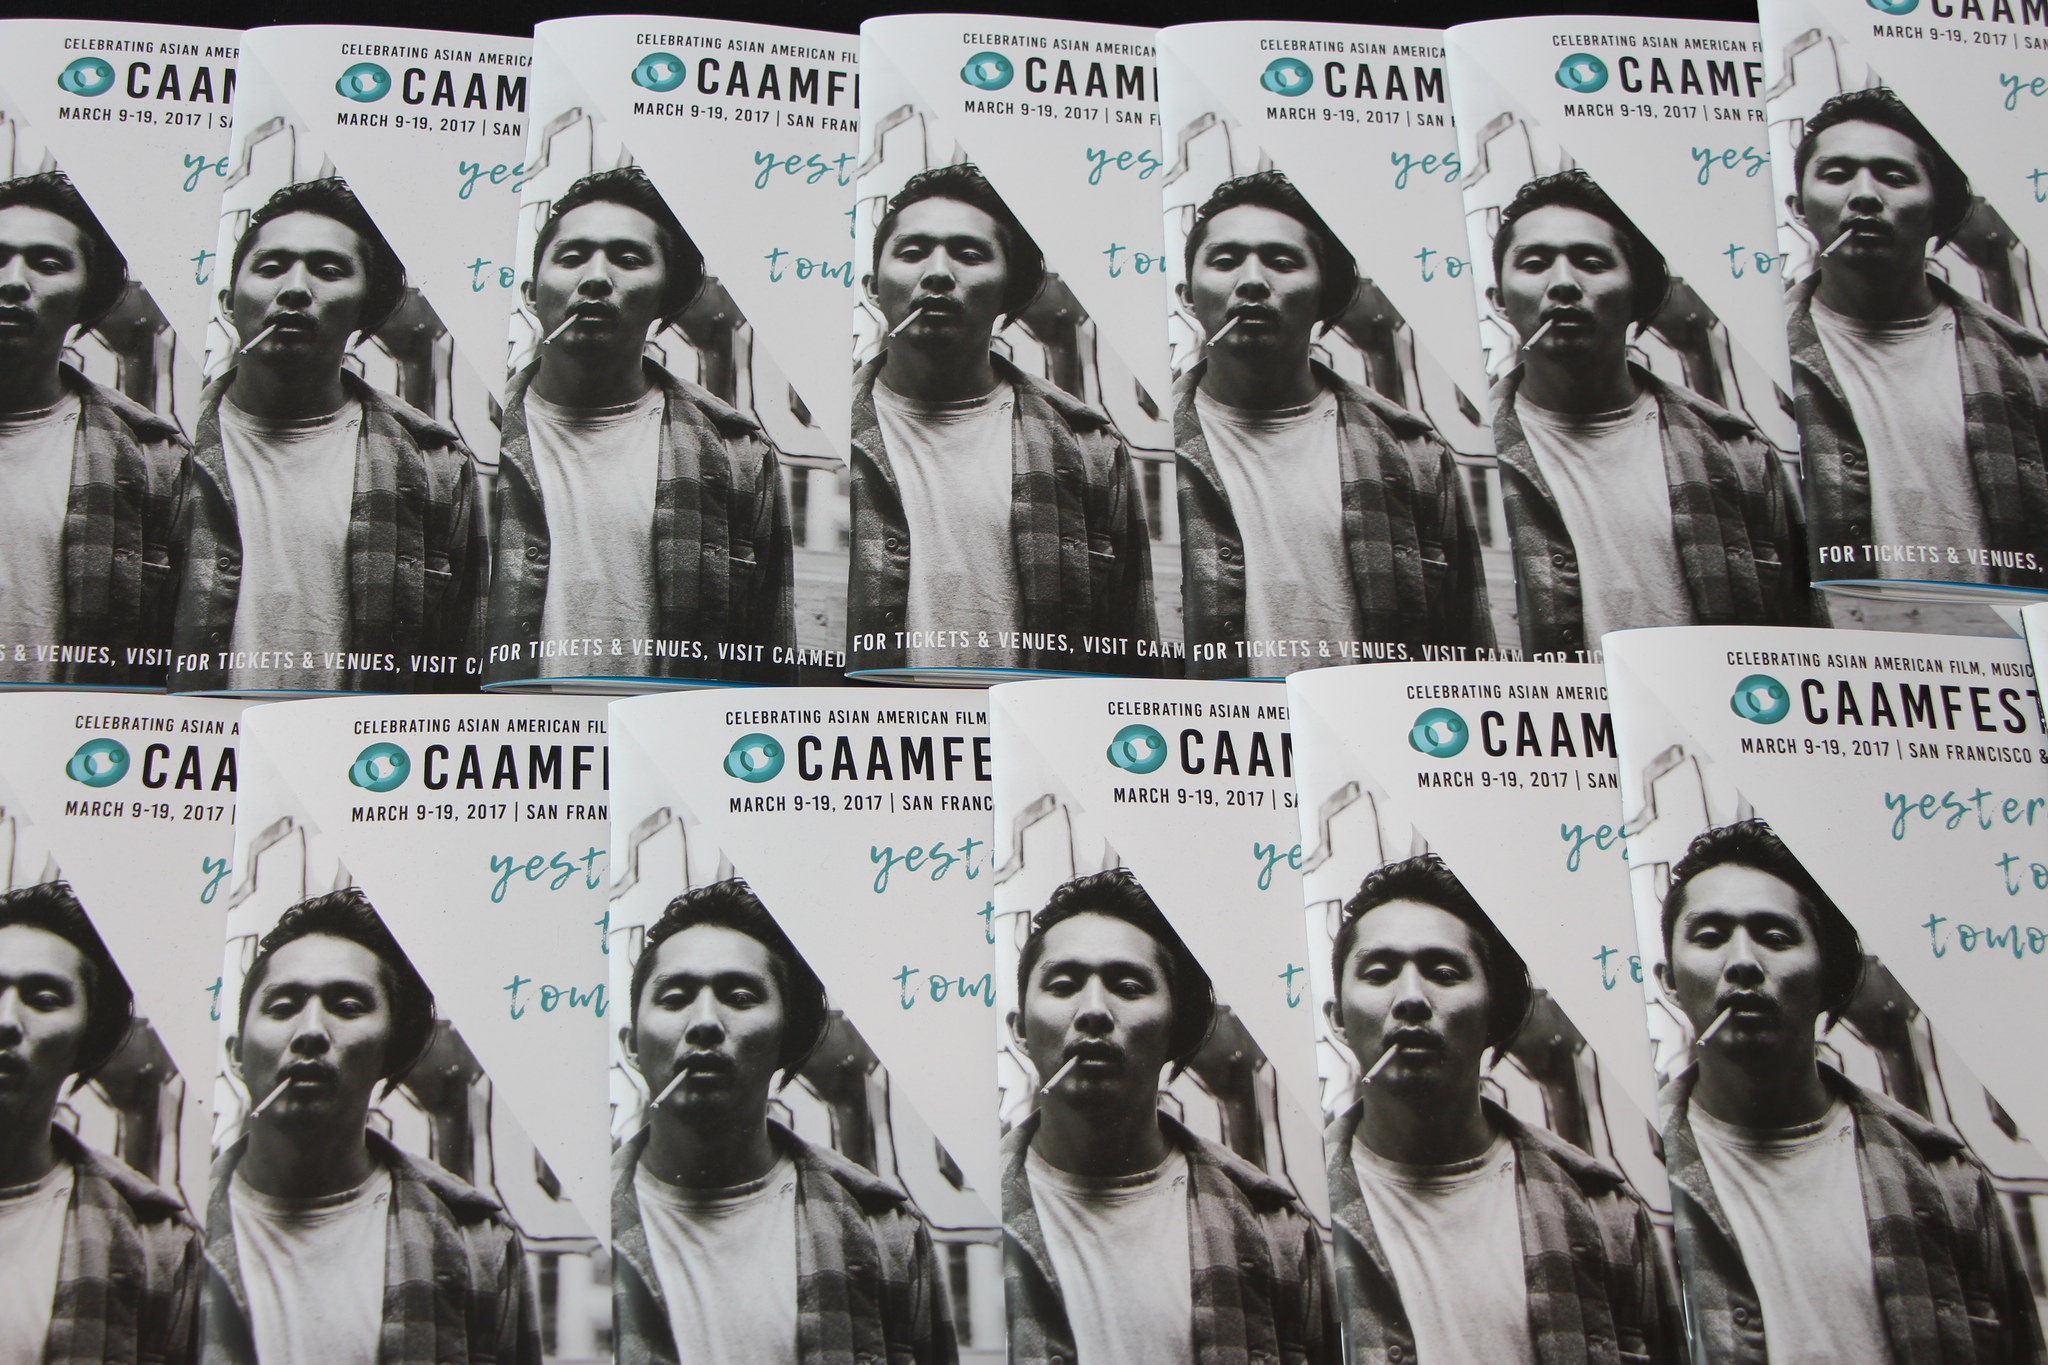 CAAMFest 2017 program guides with Justin Chon in